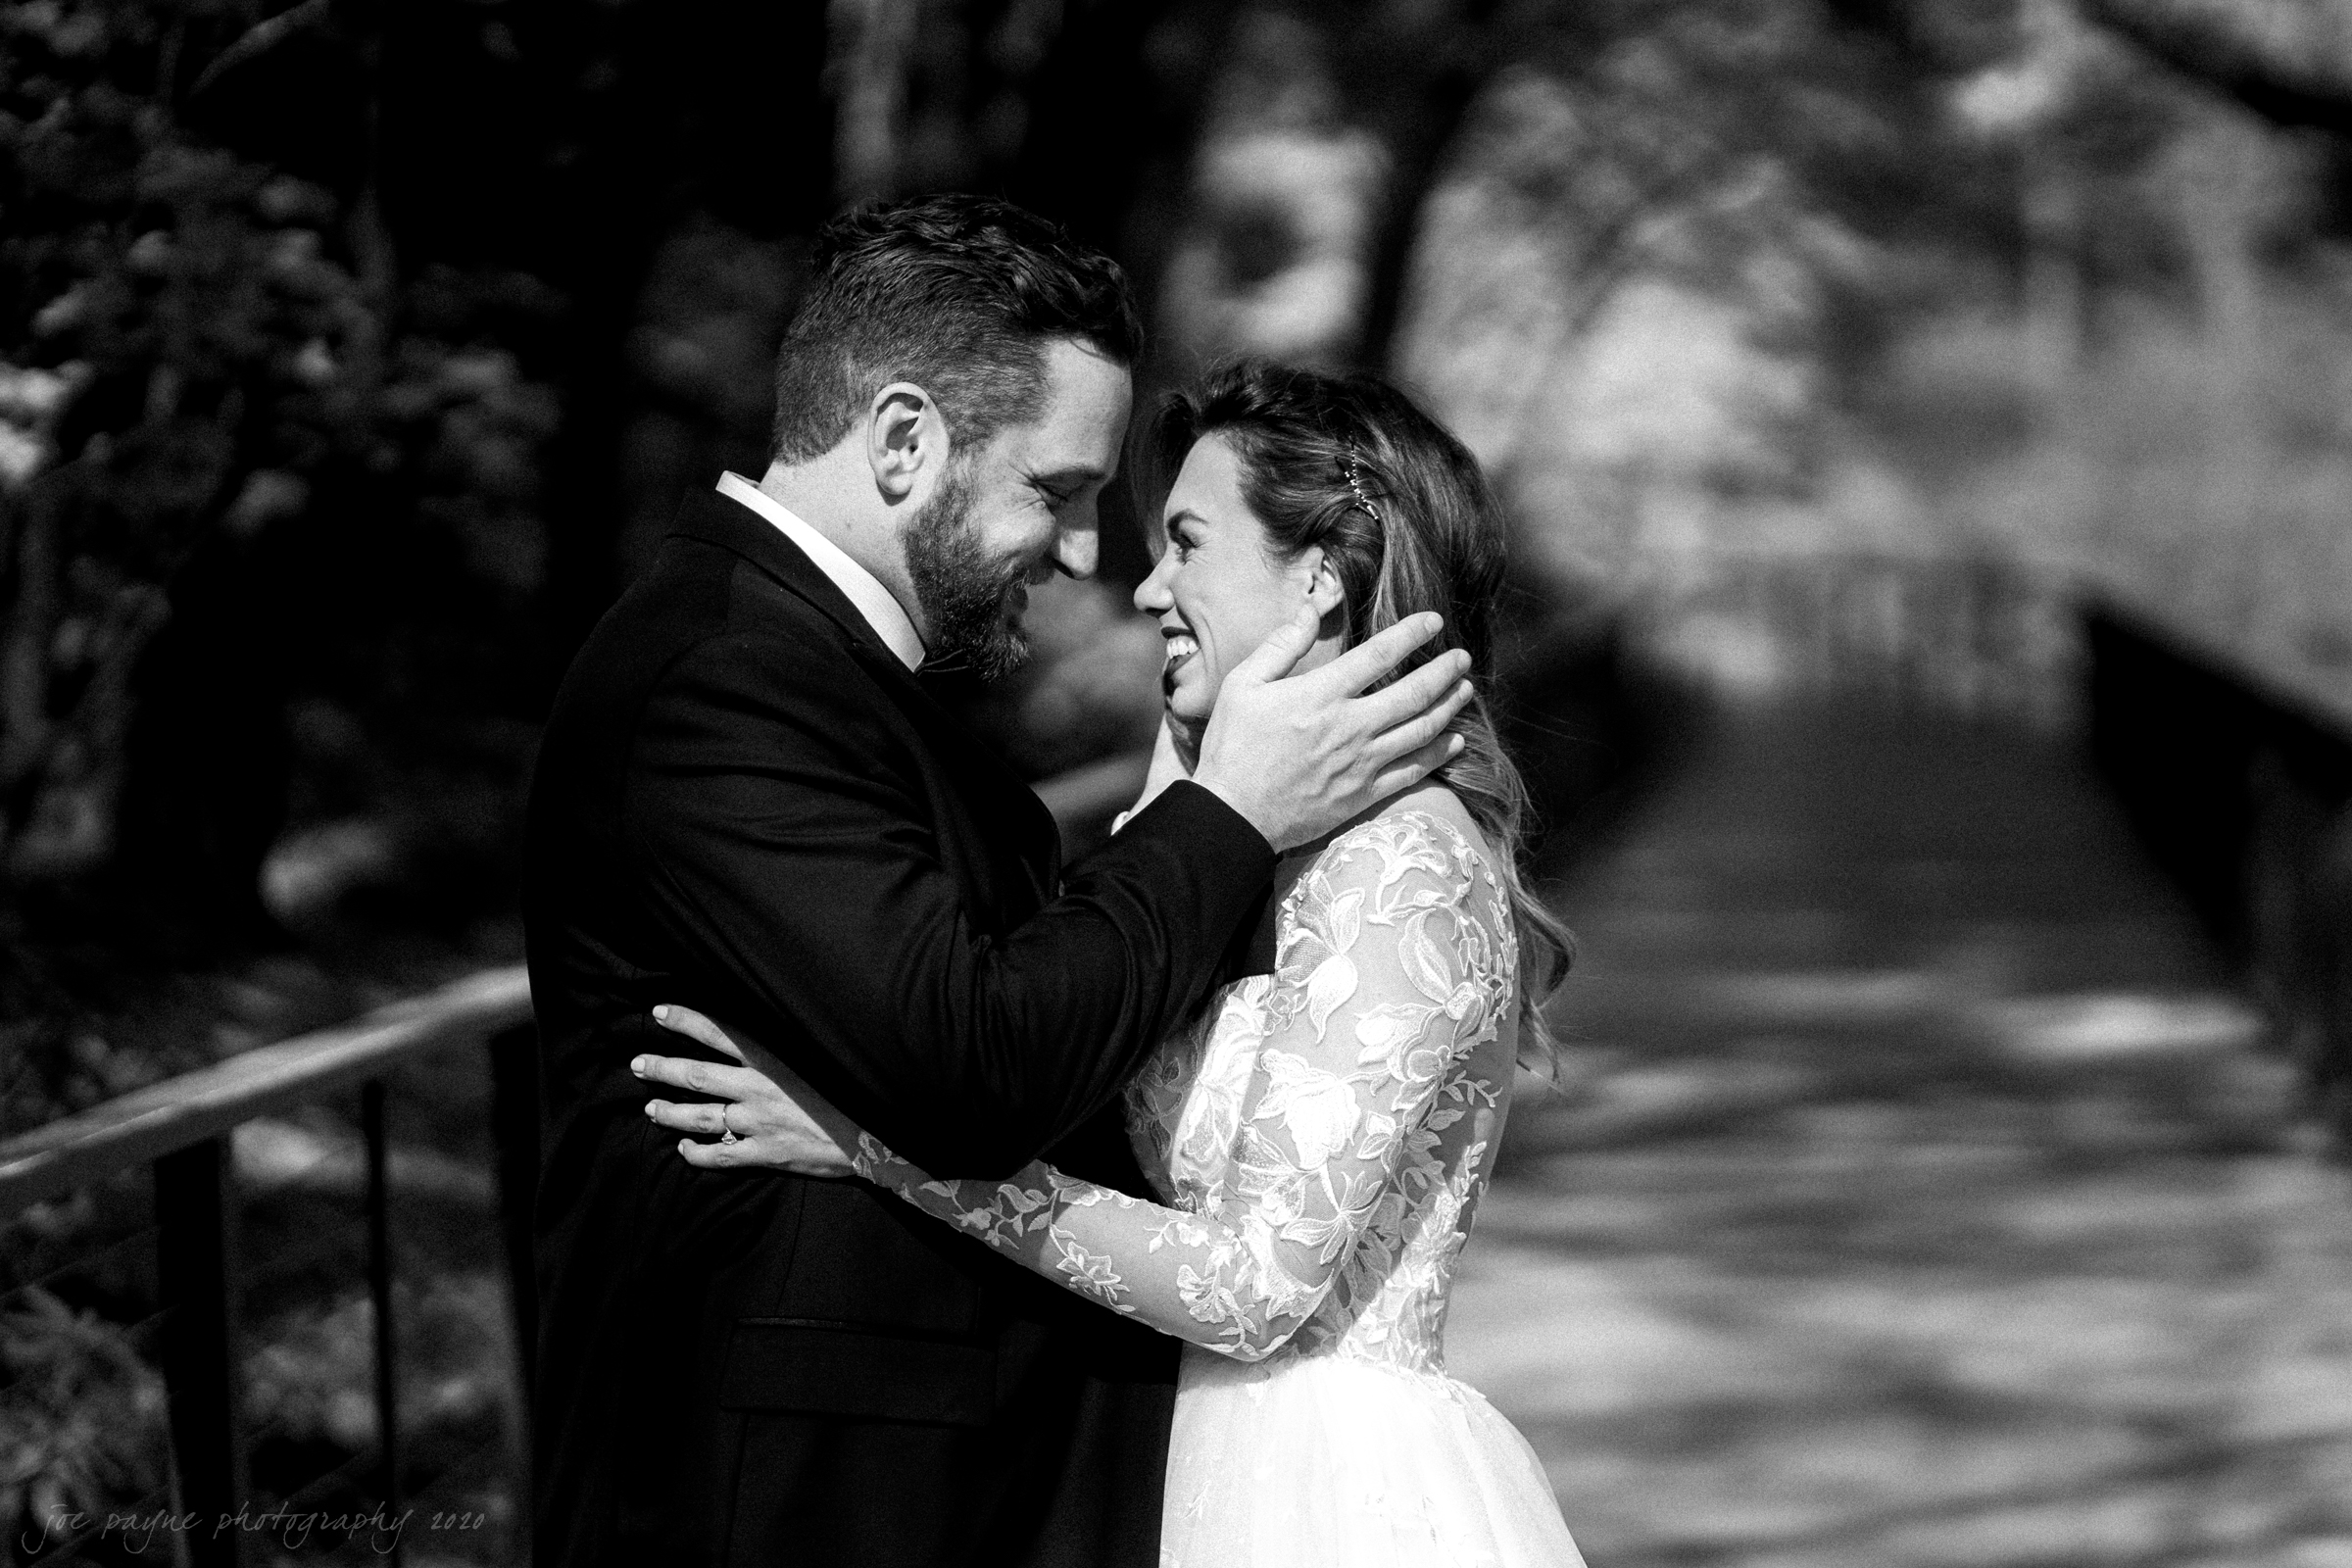 umstead hotel park wedding photography brittany harrison 12